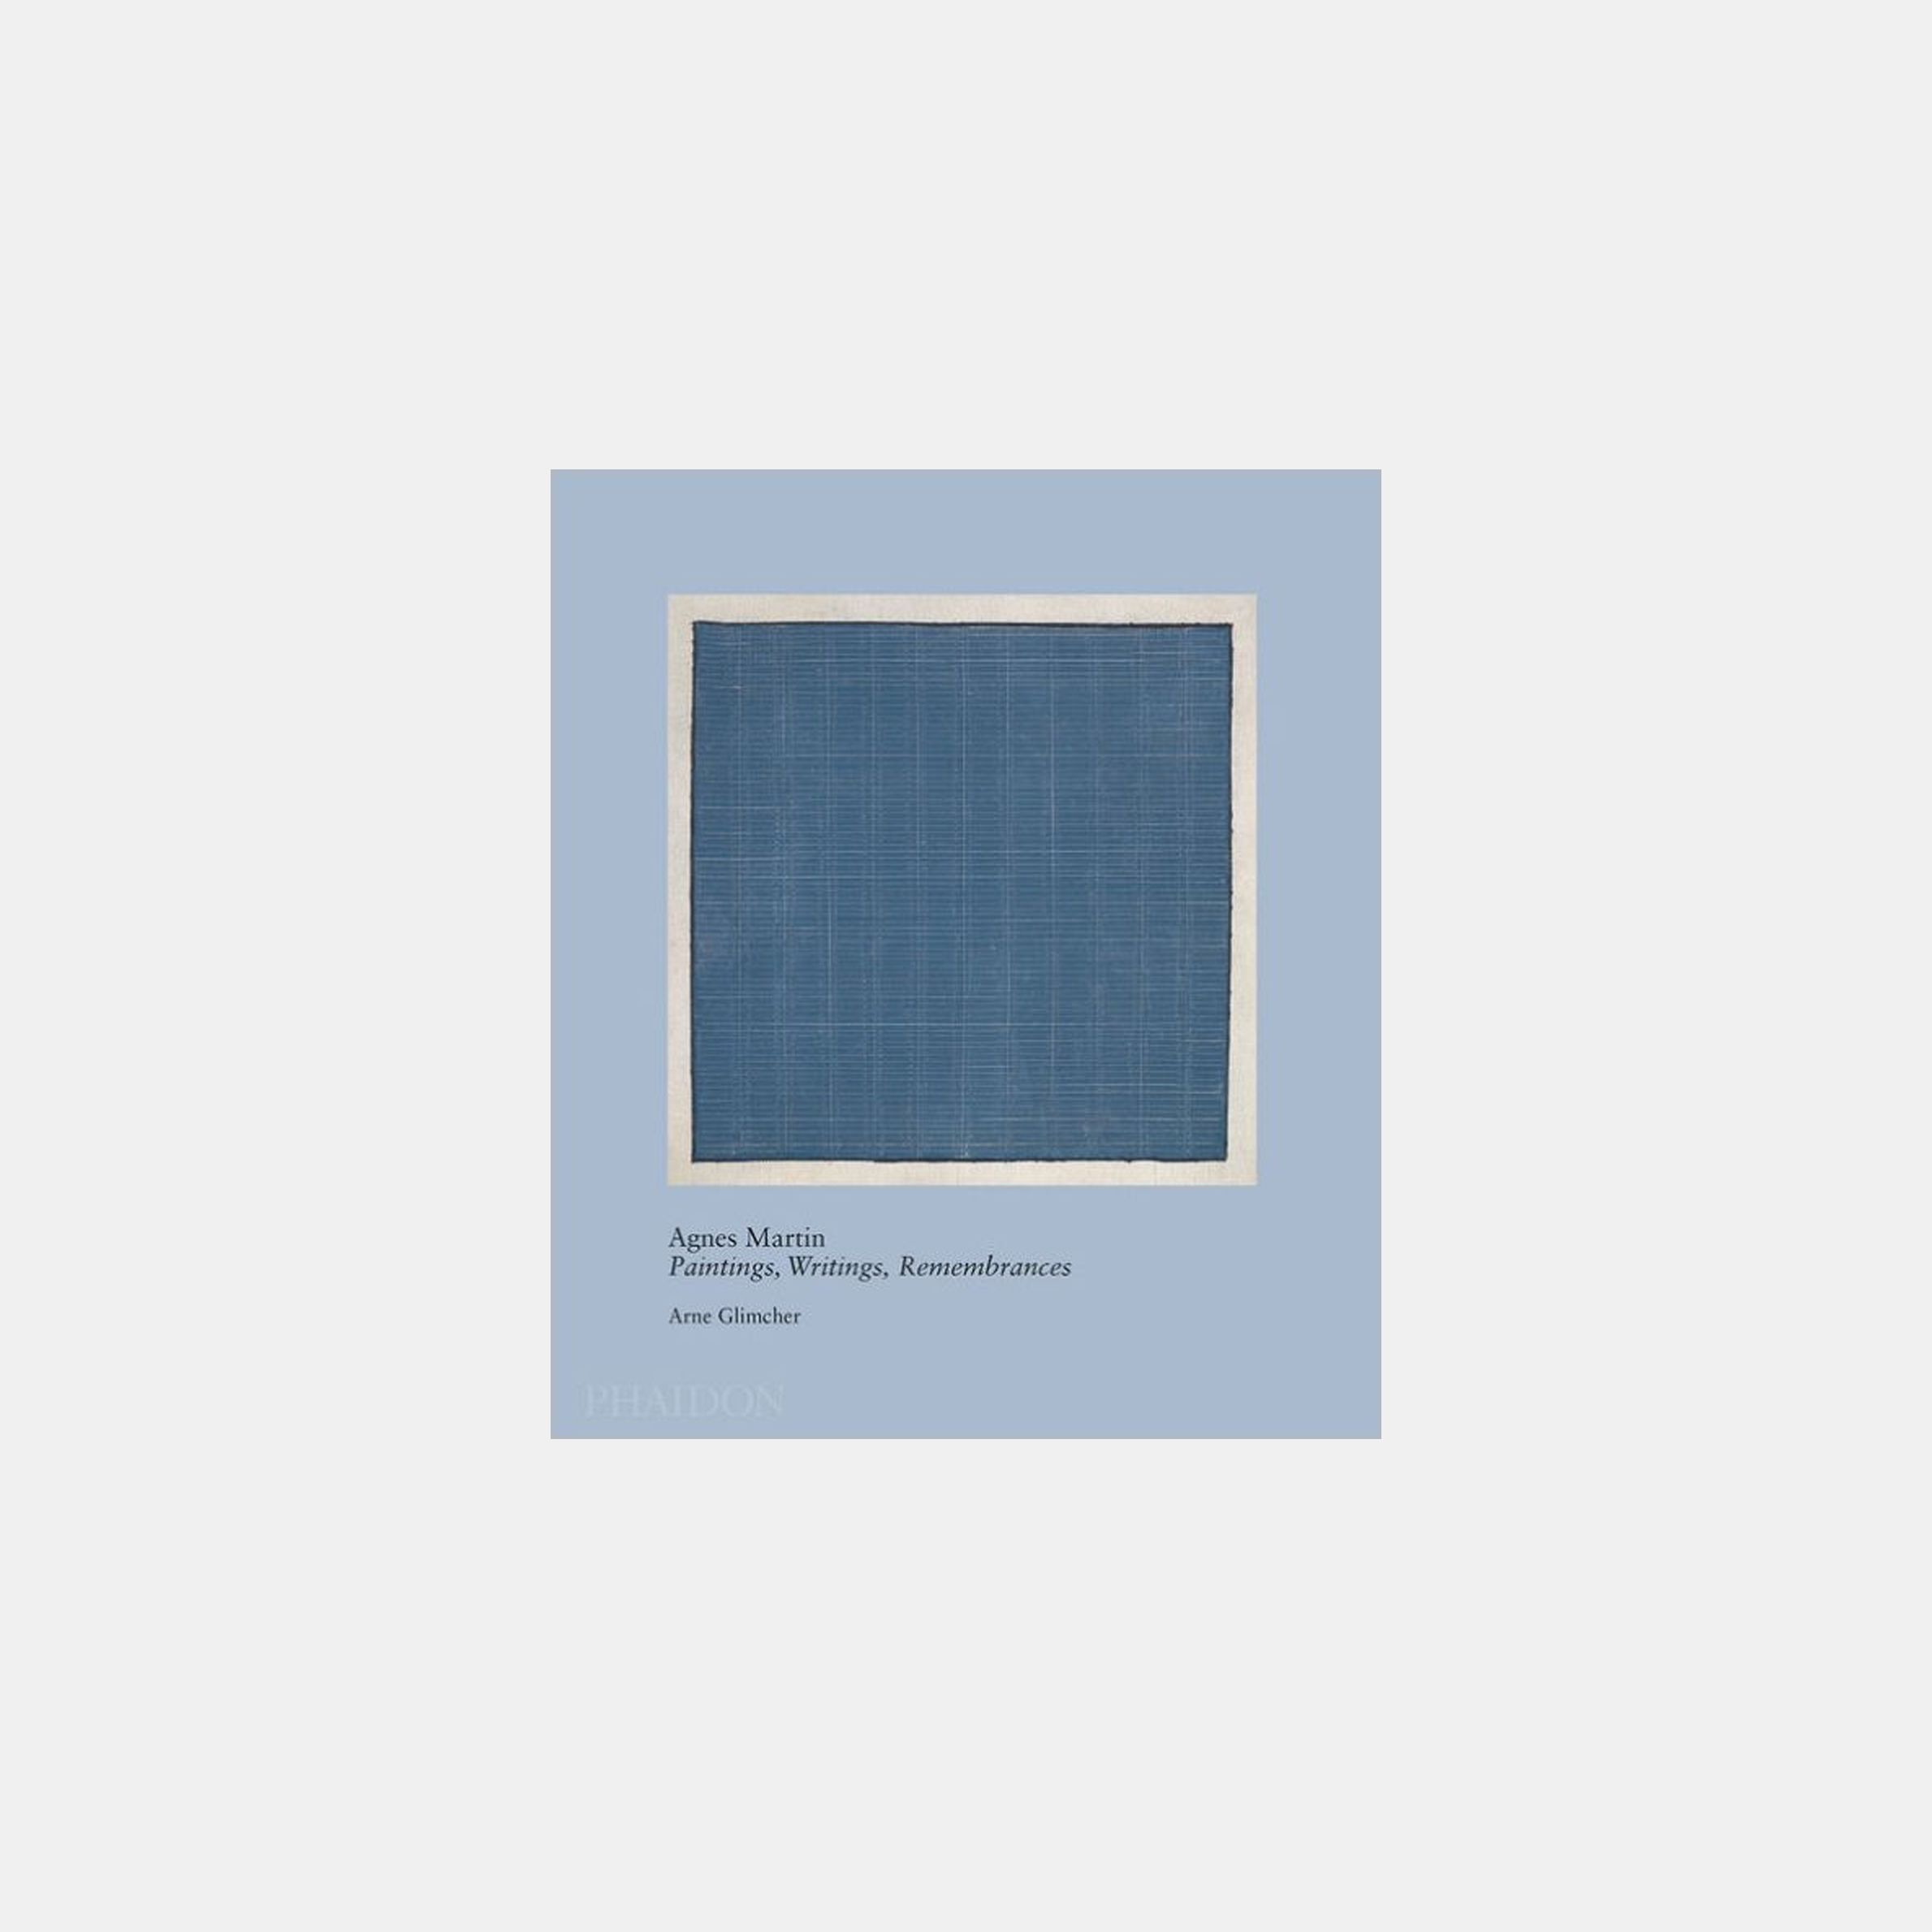 Agnes Martin: Paintings, Writings, Remembrances   Arne Glimcher